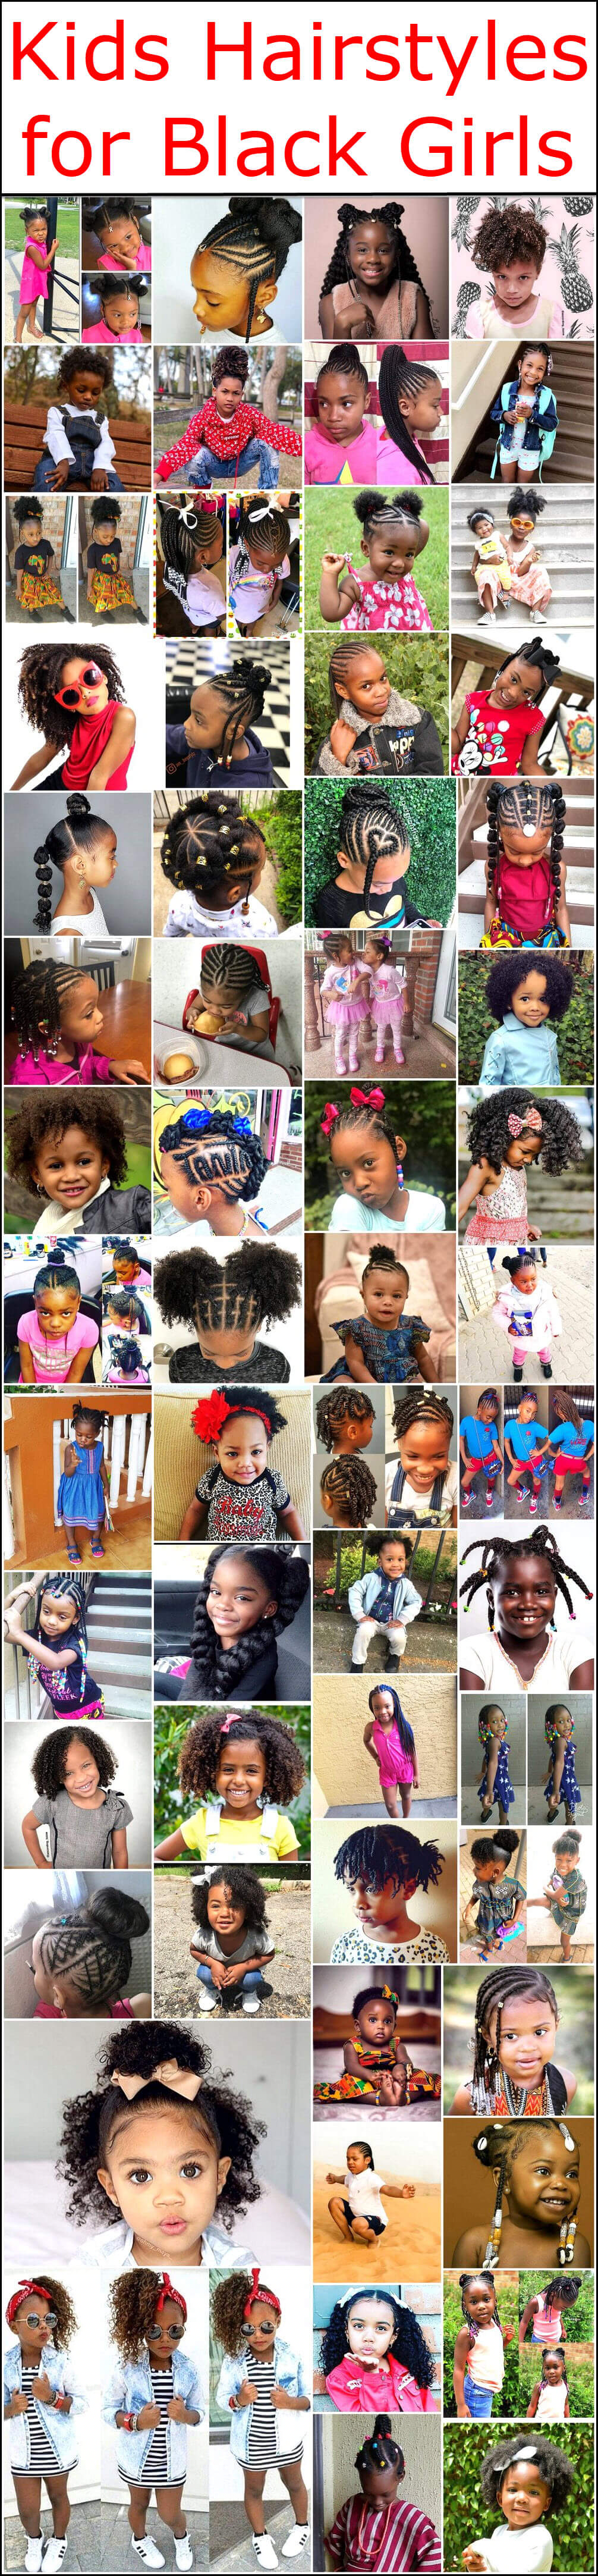 Kids Hairstyles For Black Girls Kids Hairstyle Haircut